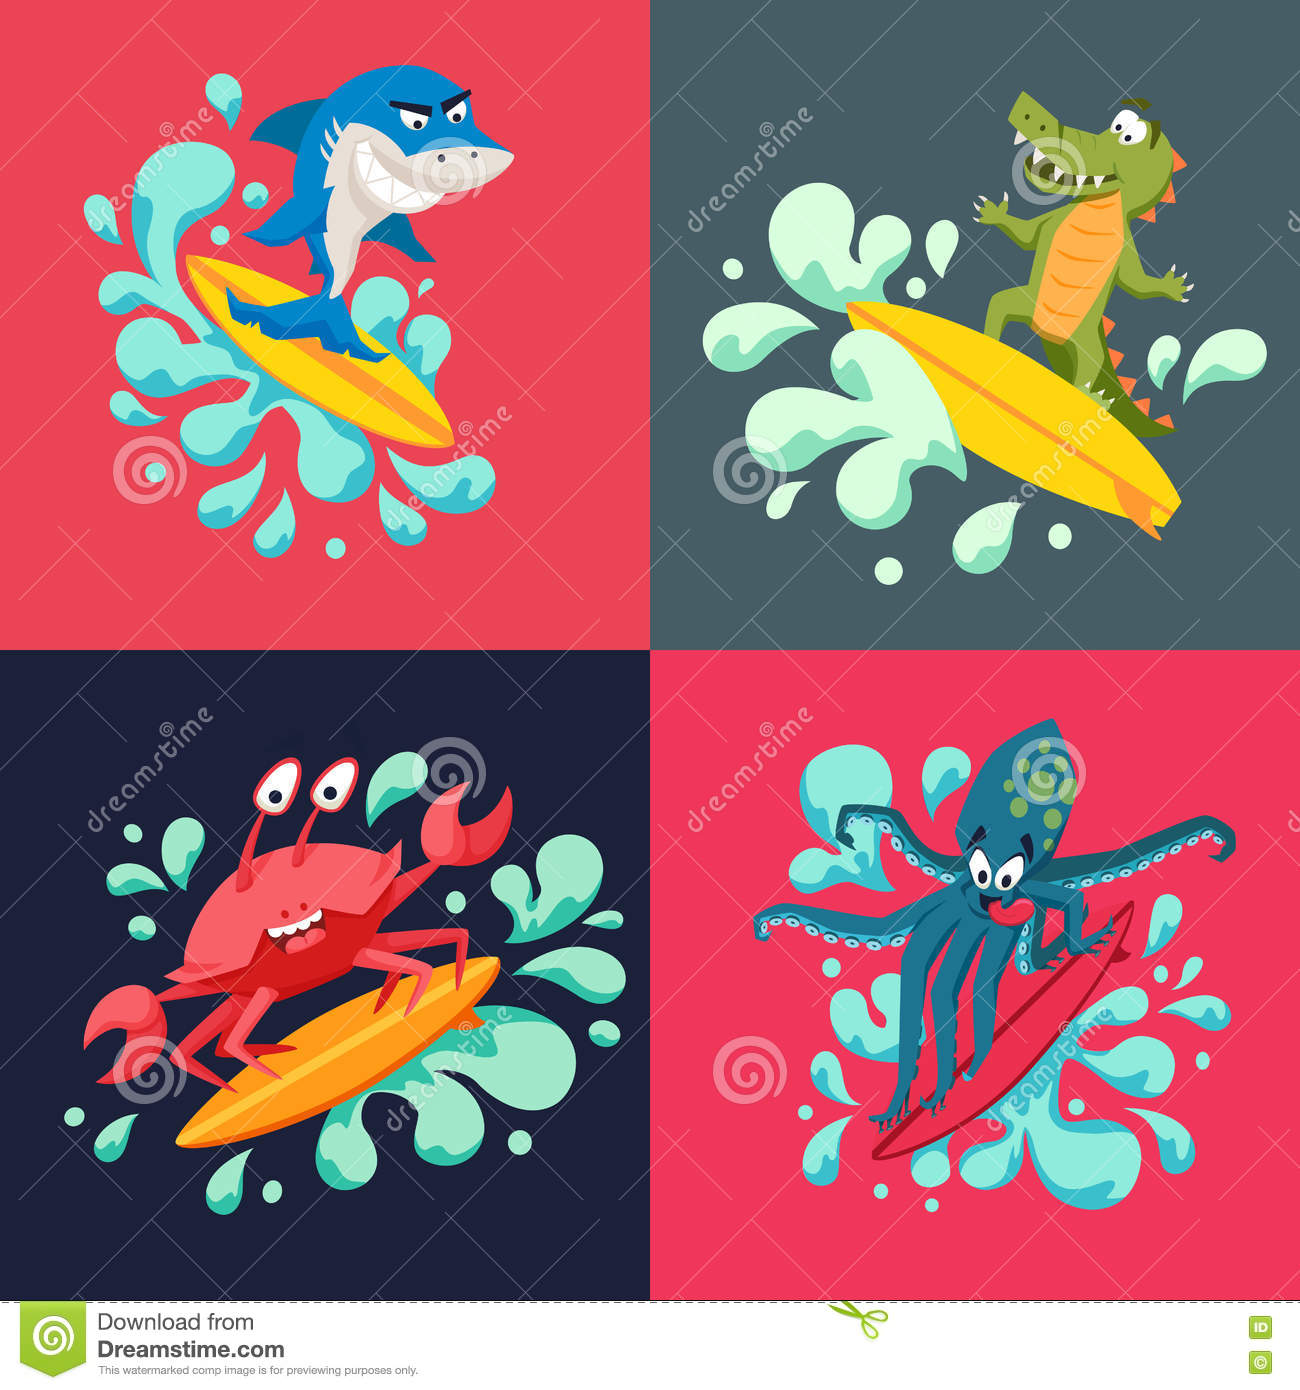 Cool Octopus Art Surfer Cool Animals Stock Vector Illustration Of Animal 74441567